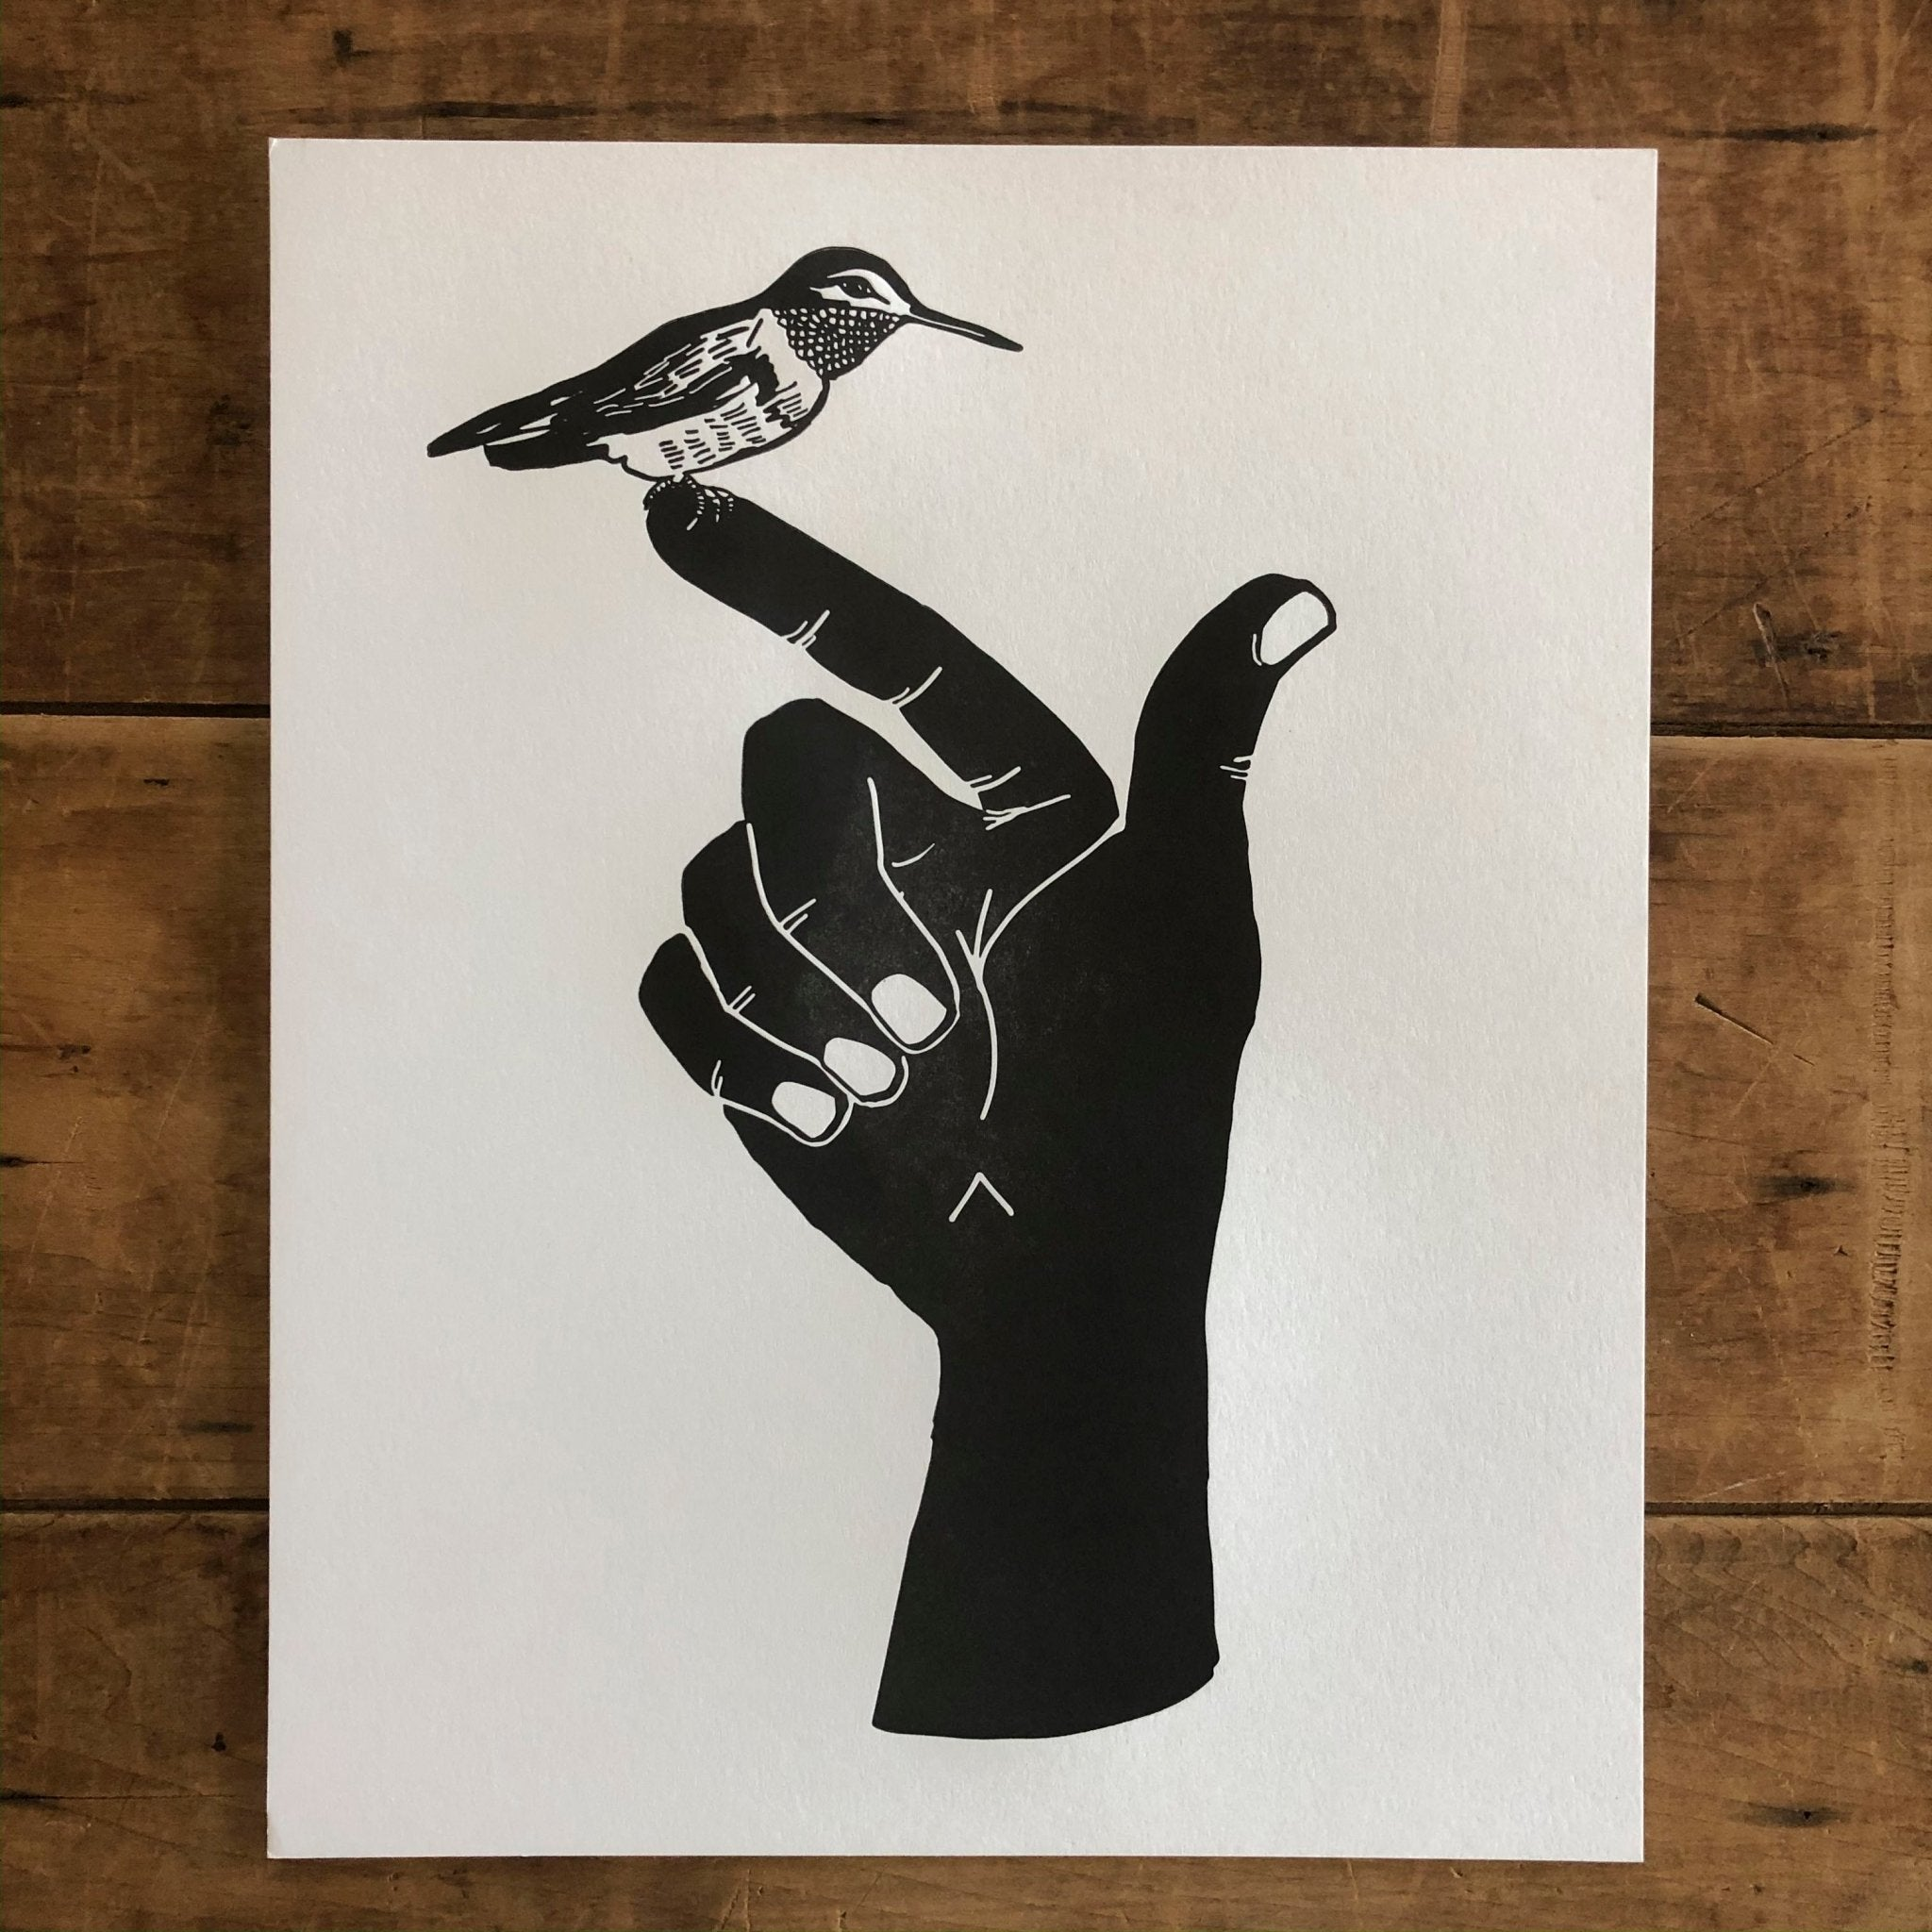 Hummingbird Hand Letterpress Print 8x10 - Ratbee Press -Freehand Market